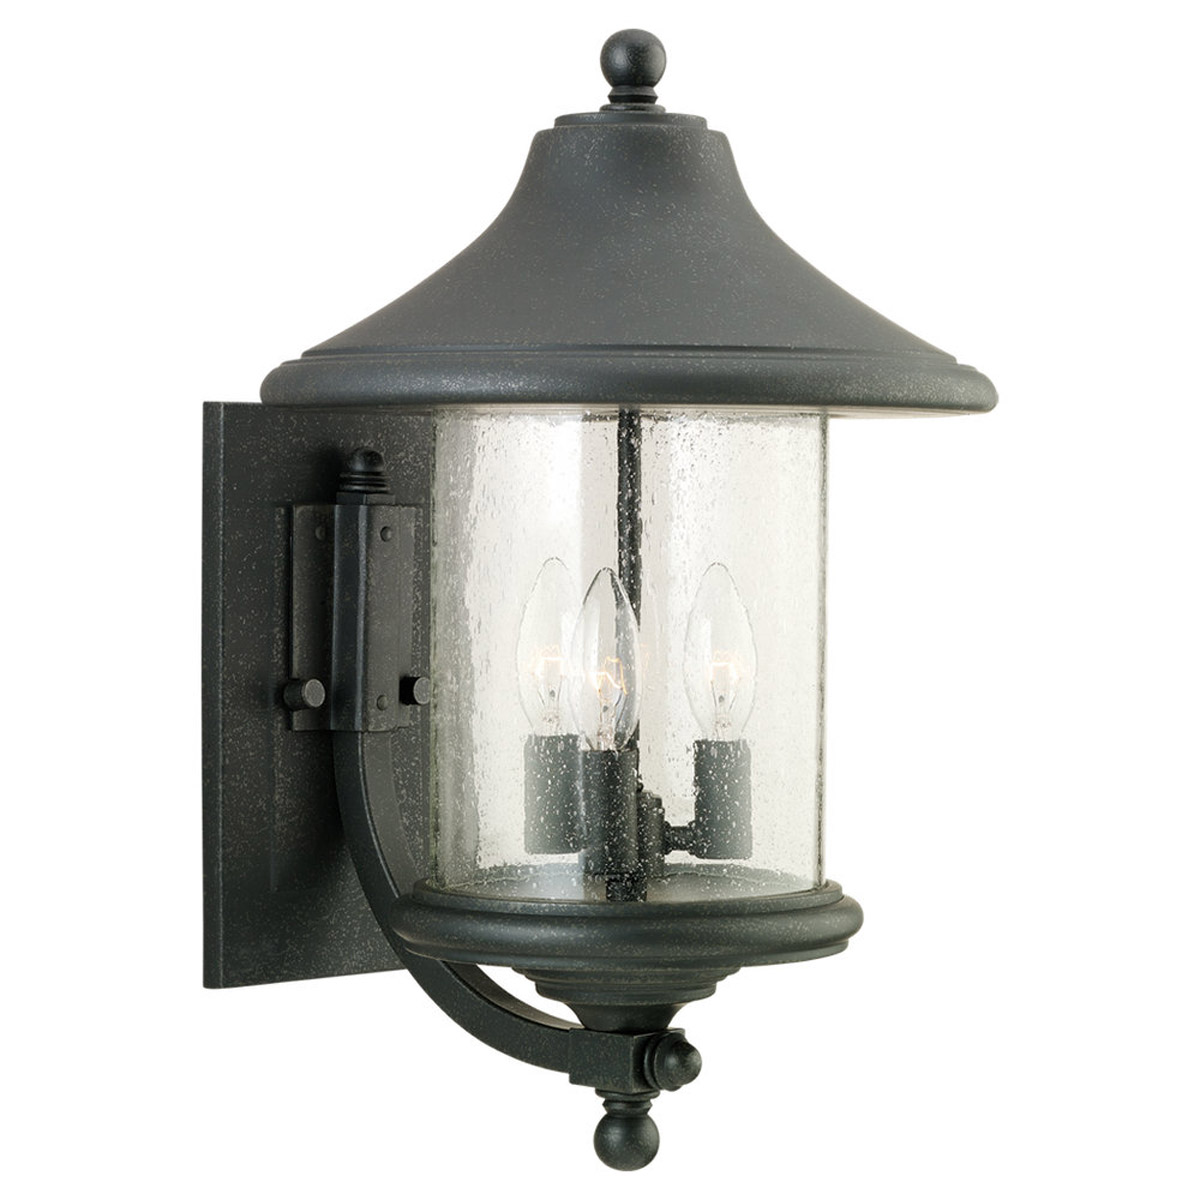 Sea Gull Lighting Berkley Hill 3 Light Outdoor Wall Lantern in Forged Iron 88307-185